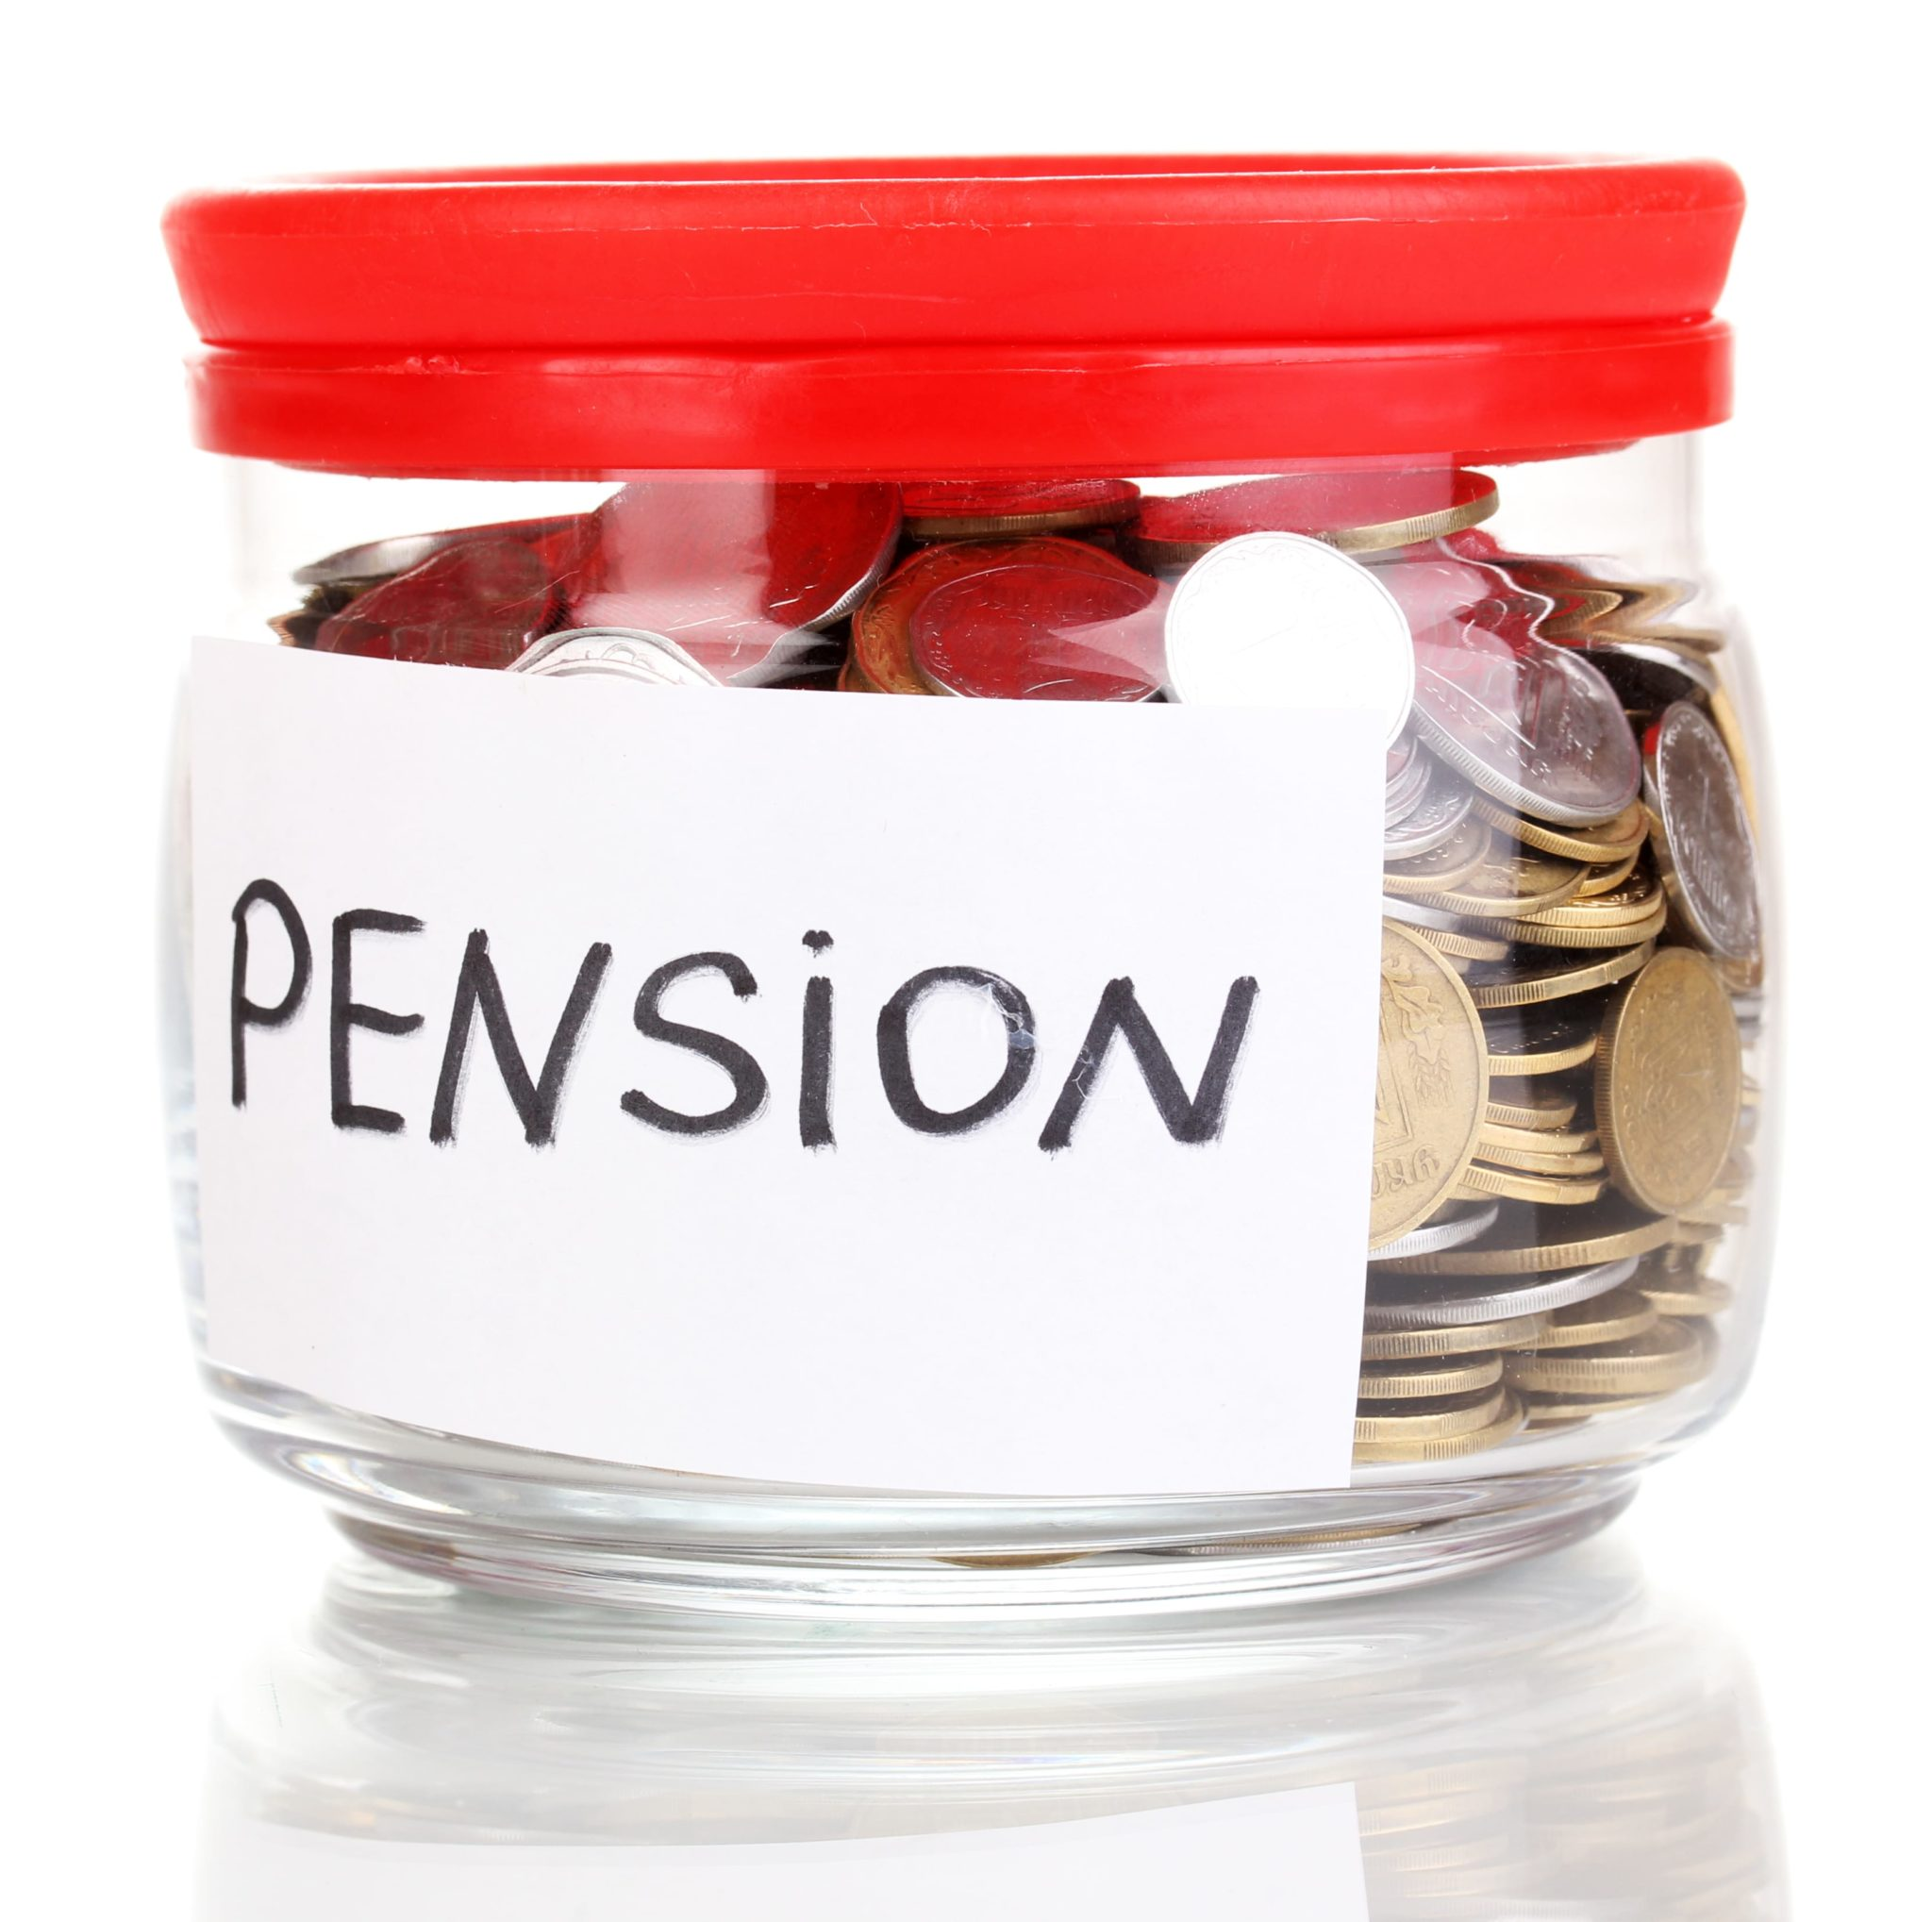 Picture Pension Pot